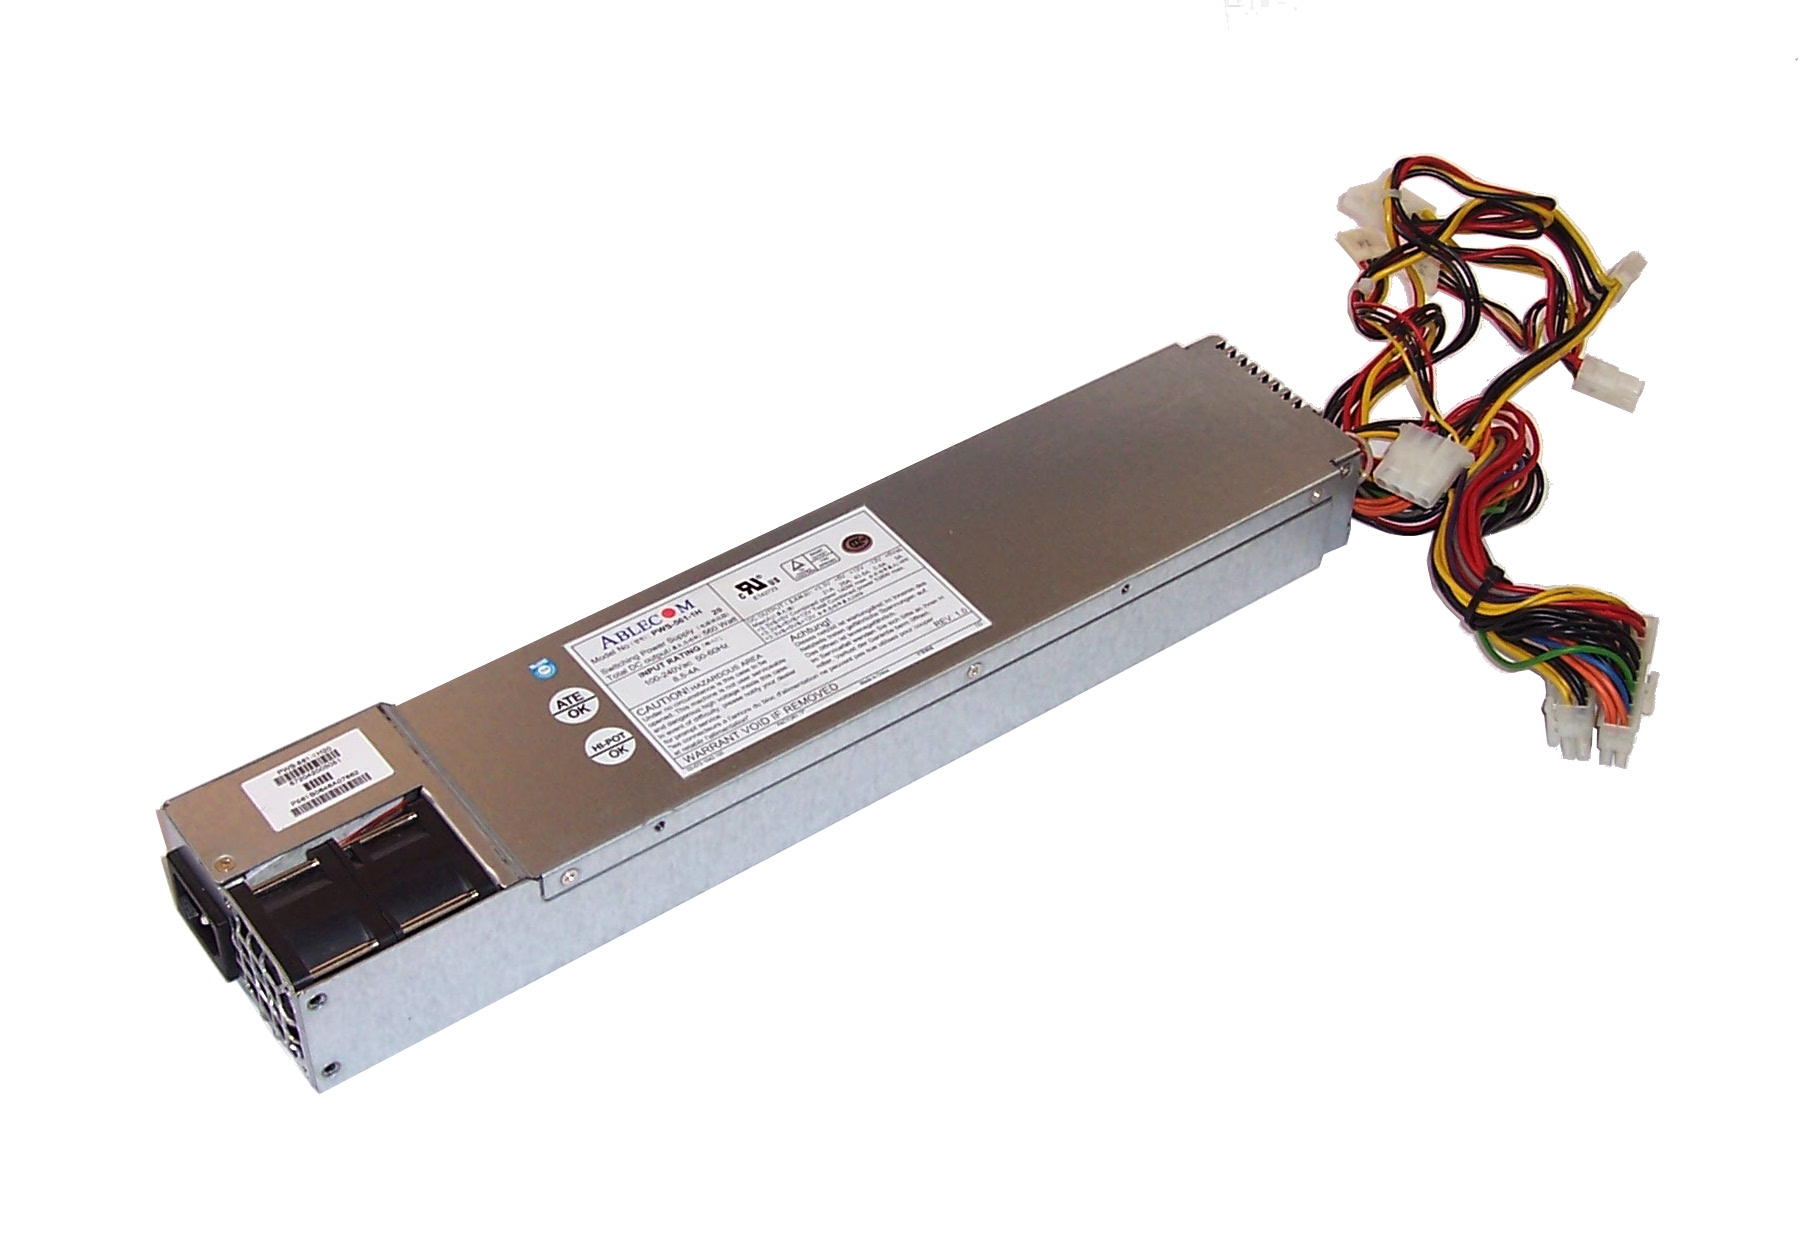 Ablecom PWS-561-1H 20 560W Non Hot-Swap 20-Pin Switching Power Supply